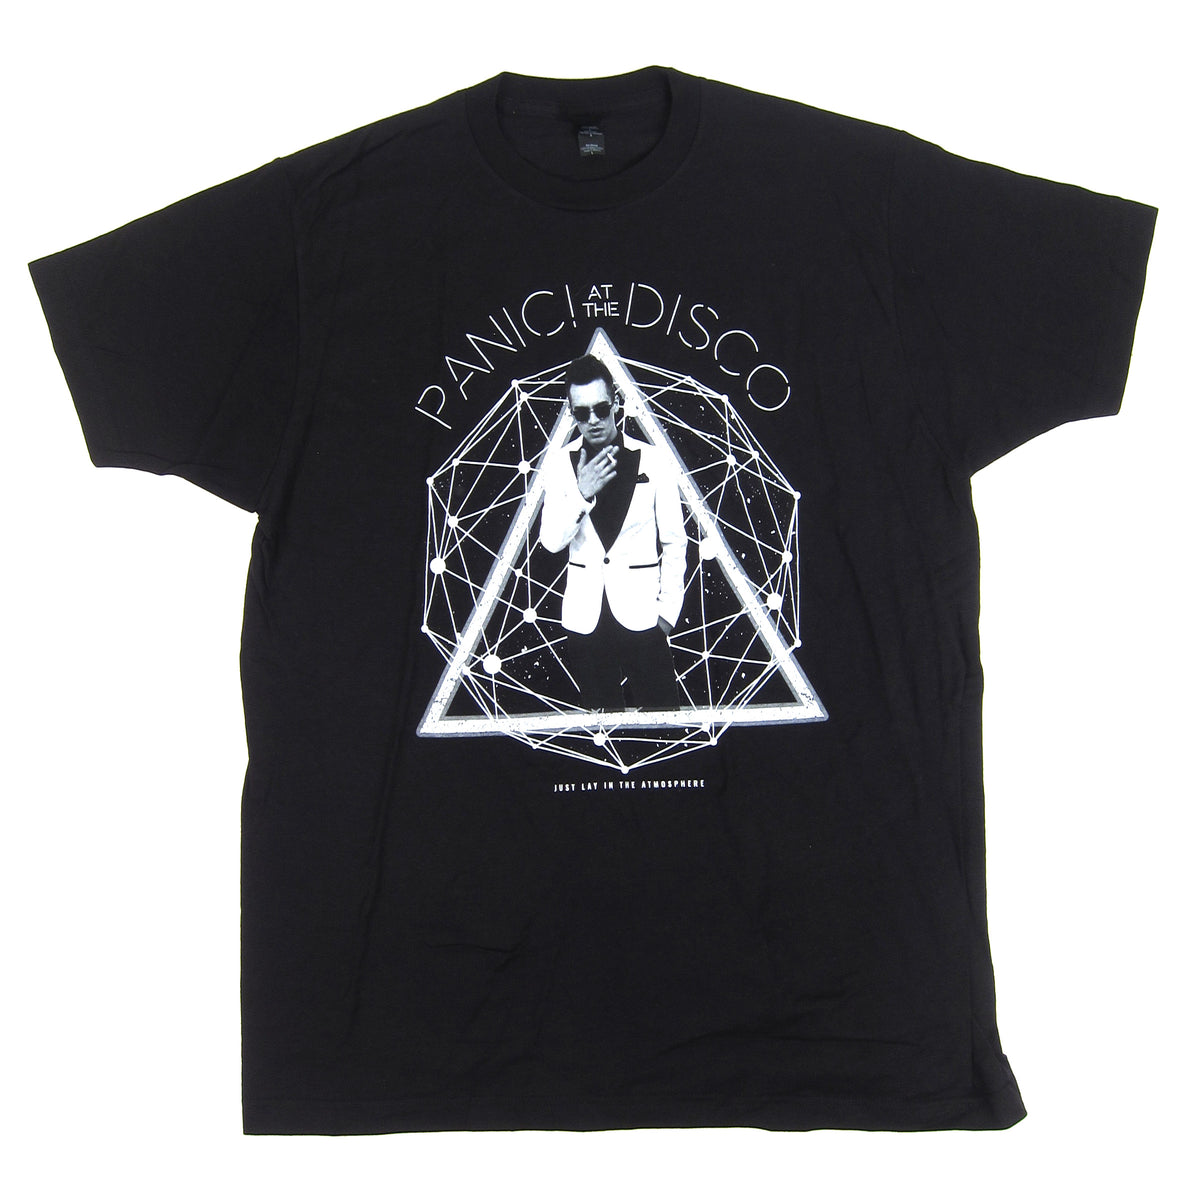 Panic! At The Disco: Photo Galaxy Shirt - Black